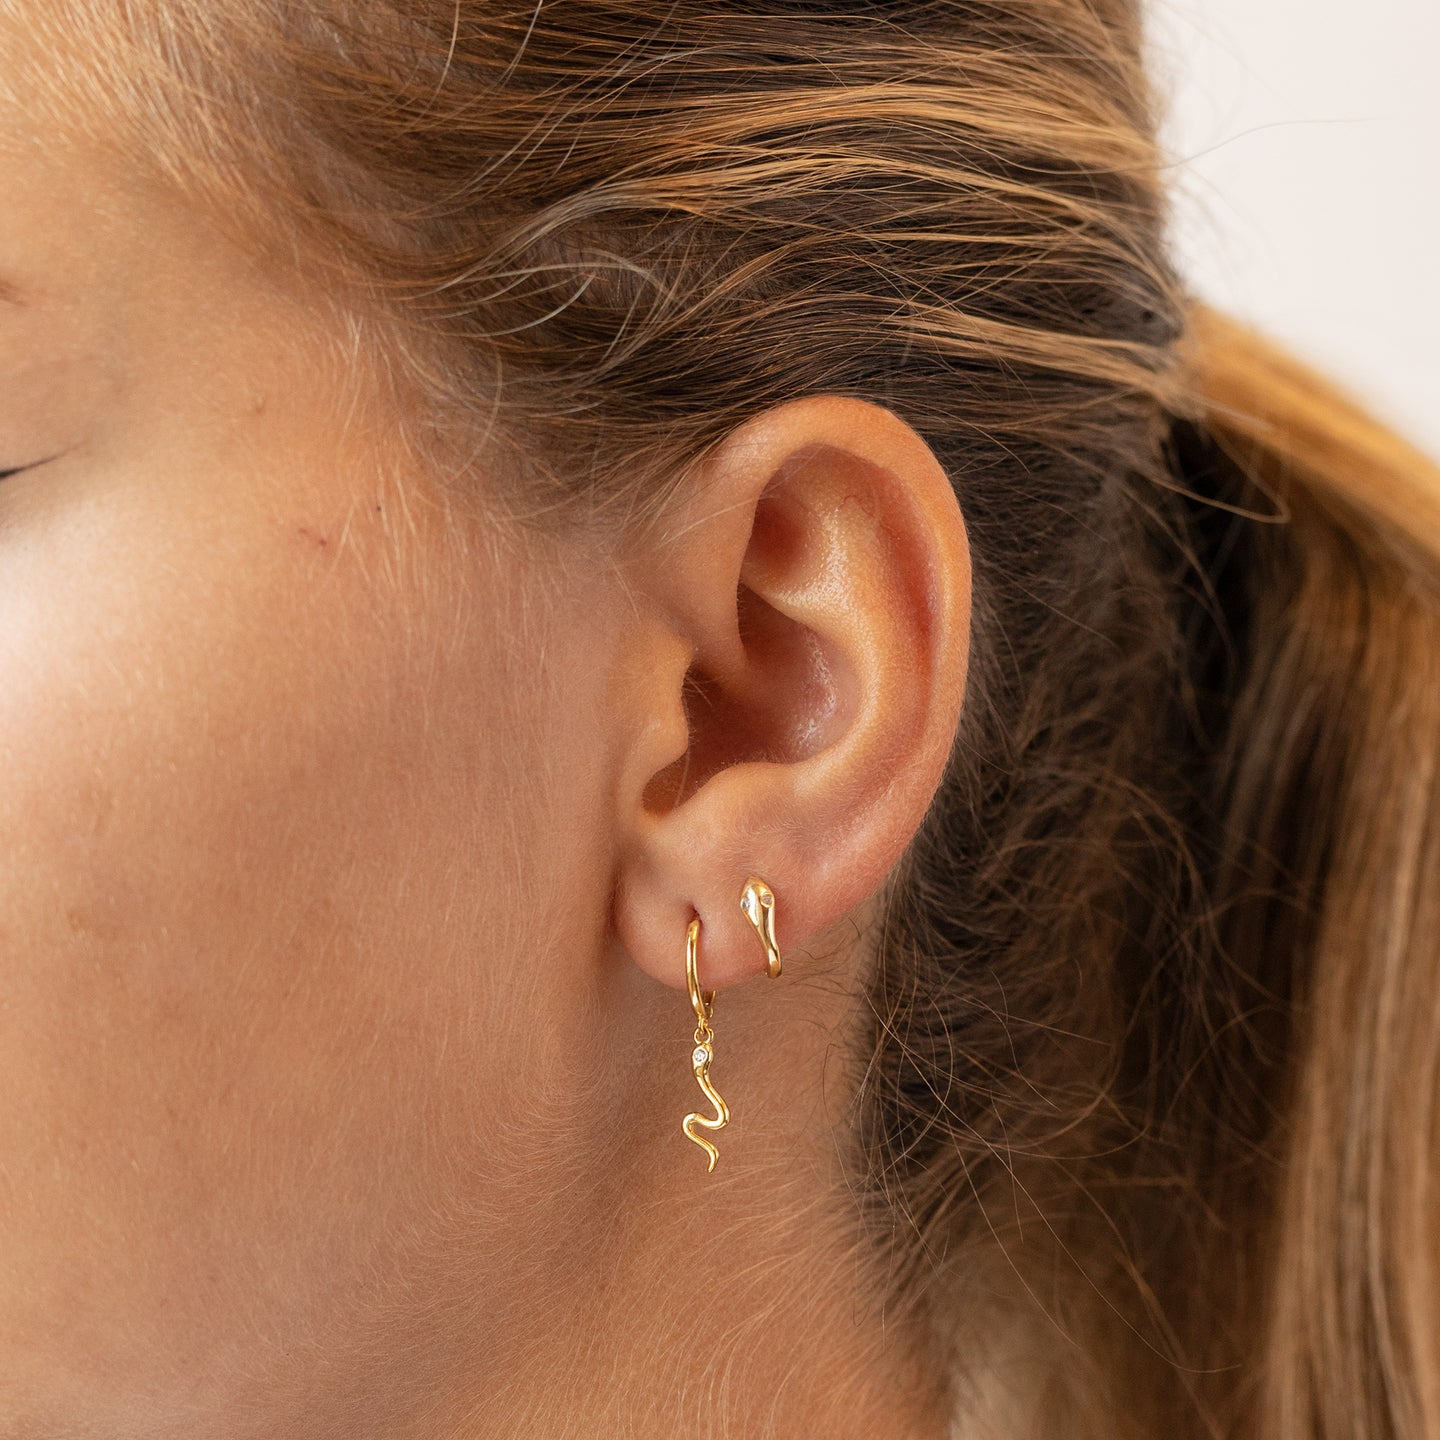 Serpent dangle in gold with a clear CZ eye on a gold huggie earring. color:gold / clear